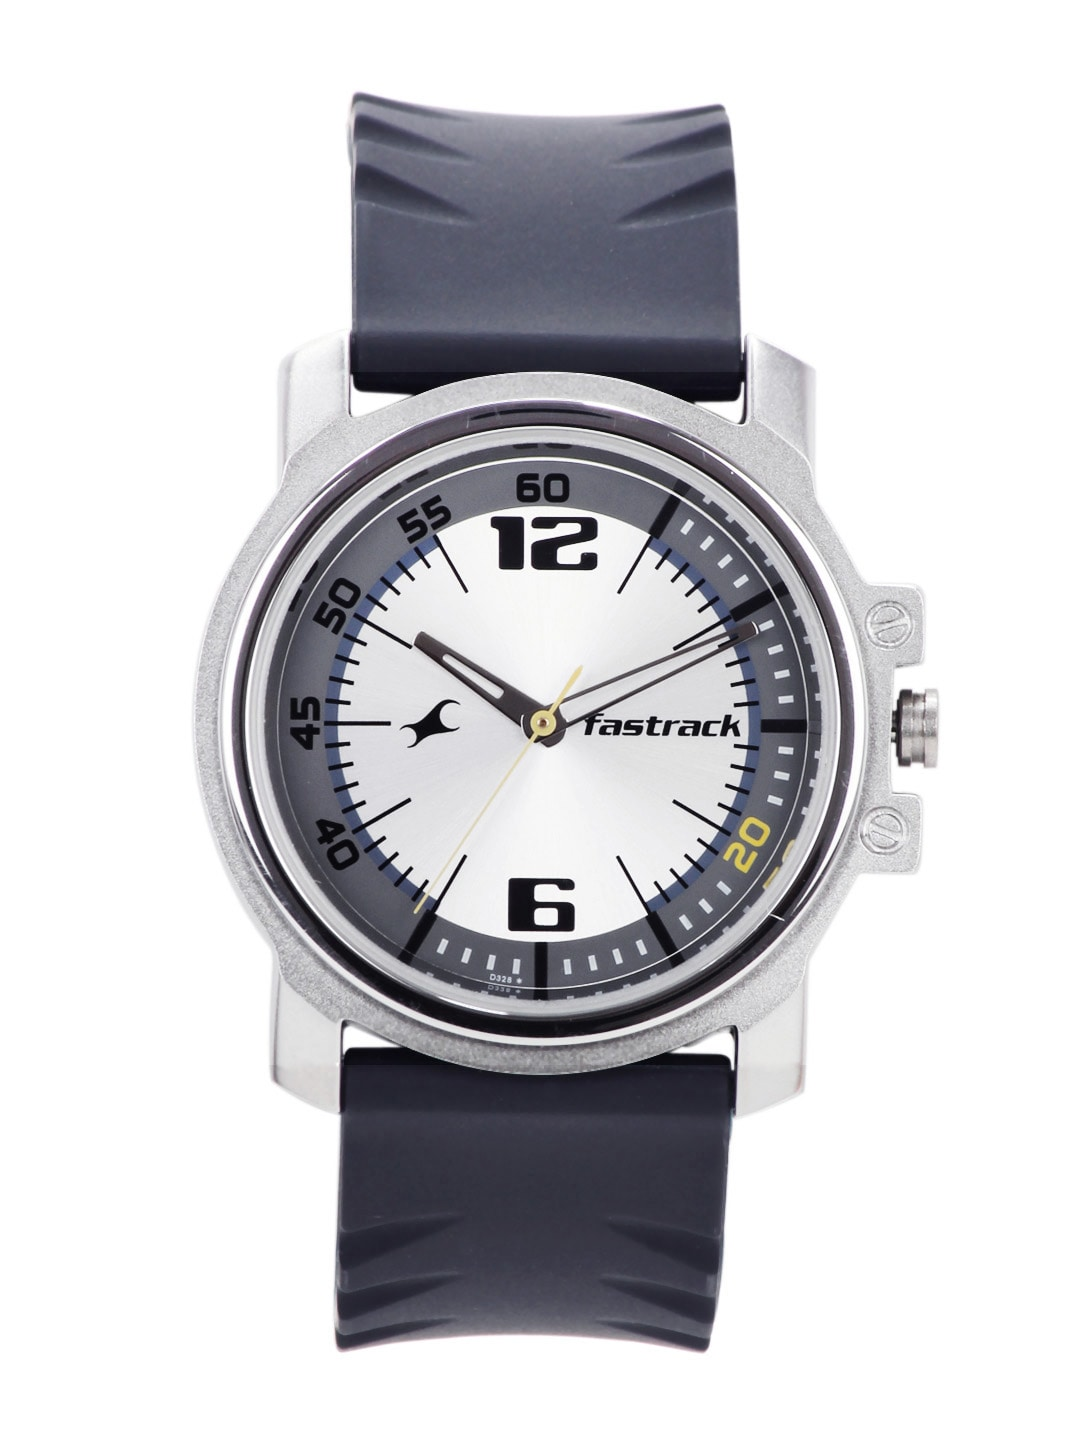 fastrack watches buy fastrack watches for men women online fastrack watches buy fastrack watches for men women online myntra